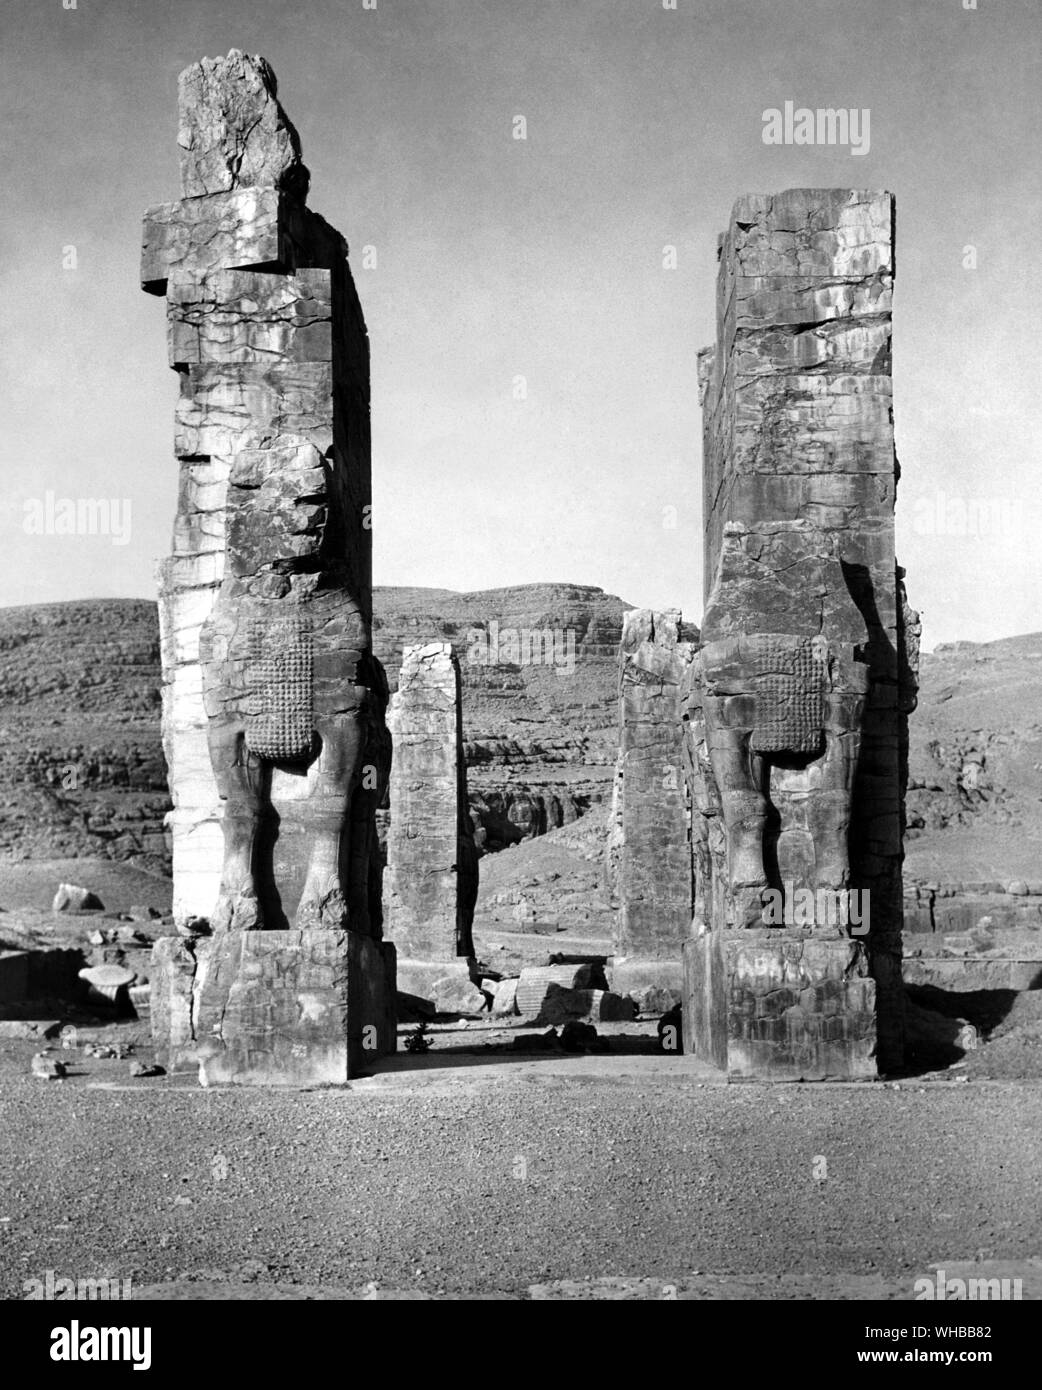 Persepolis Ancient City Of Persia Capital Of The Persian Empire Founded By Darius Near To Modern